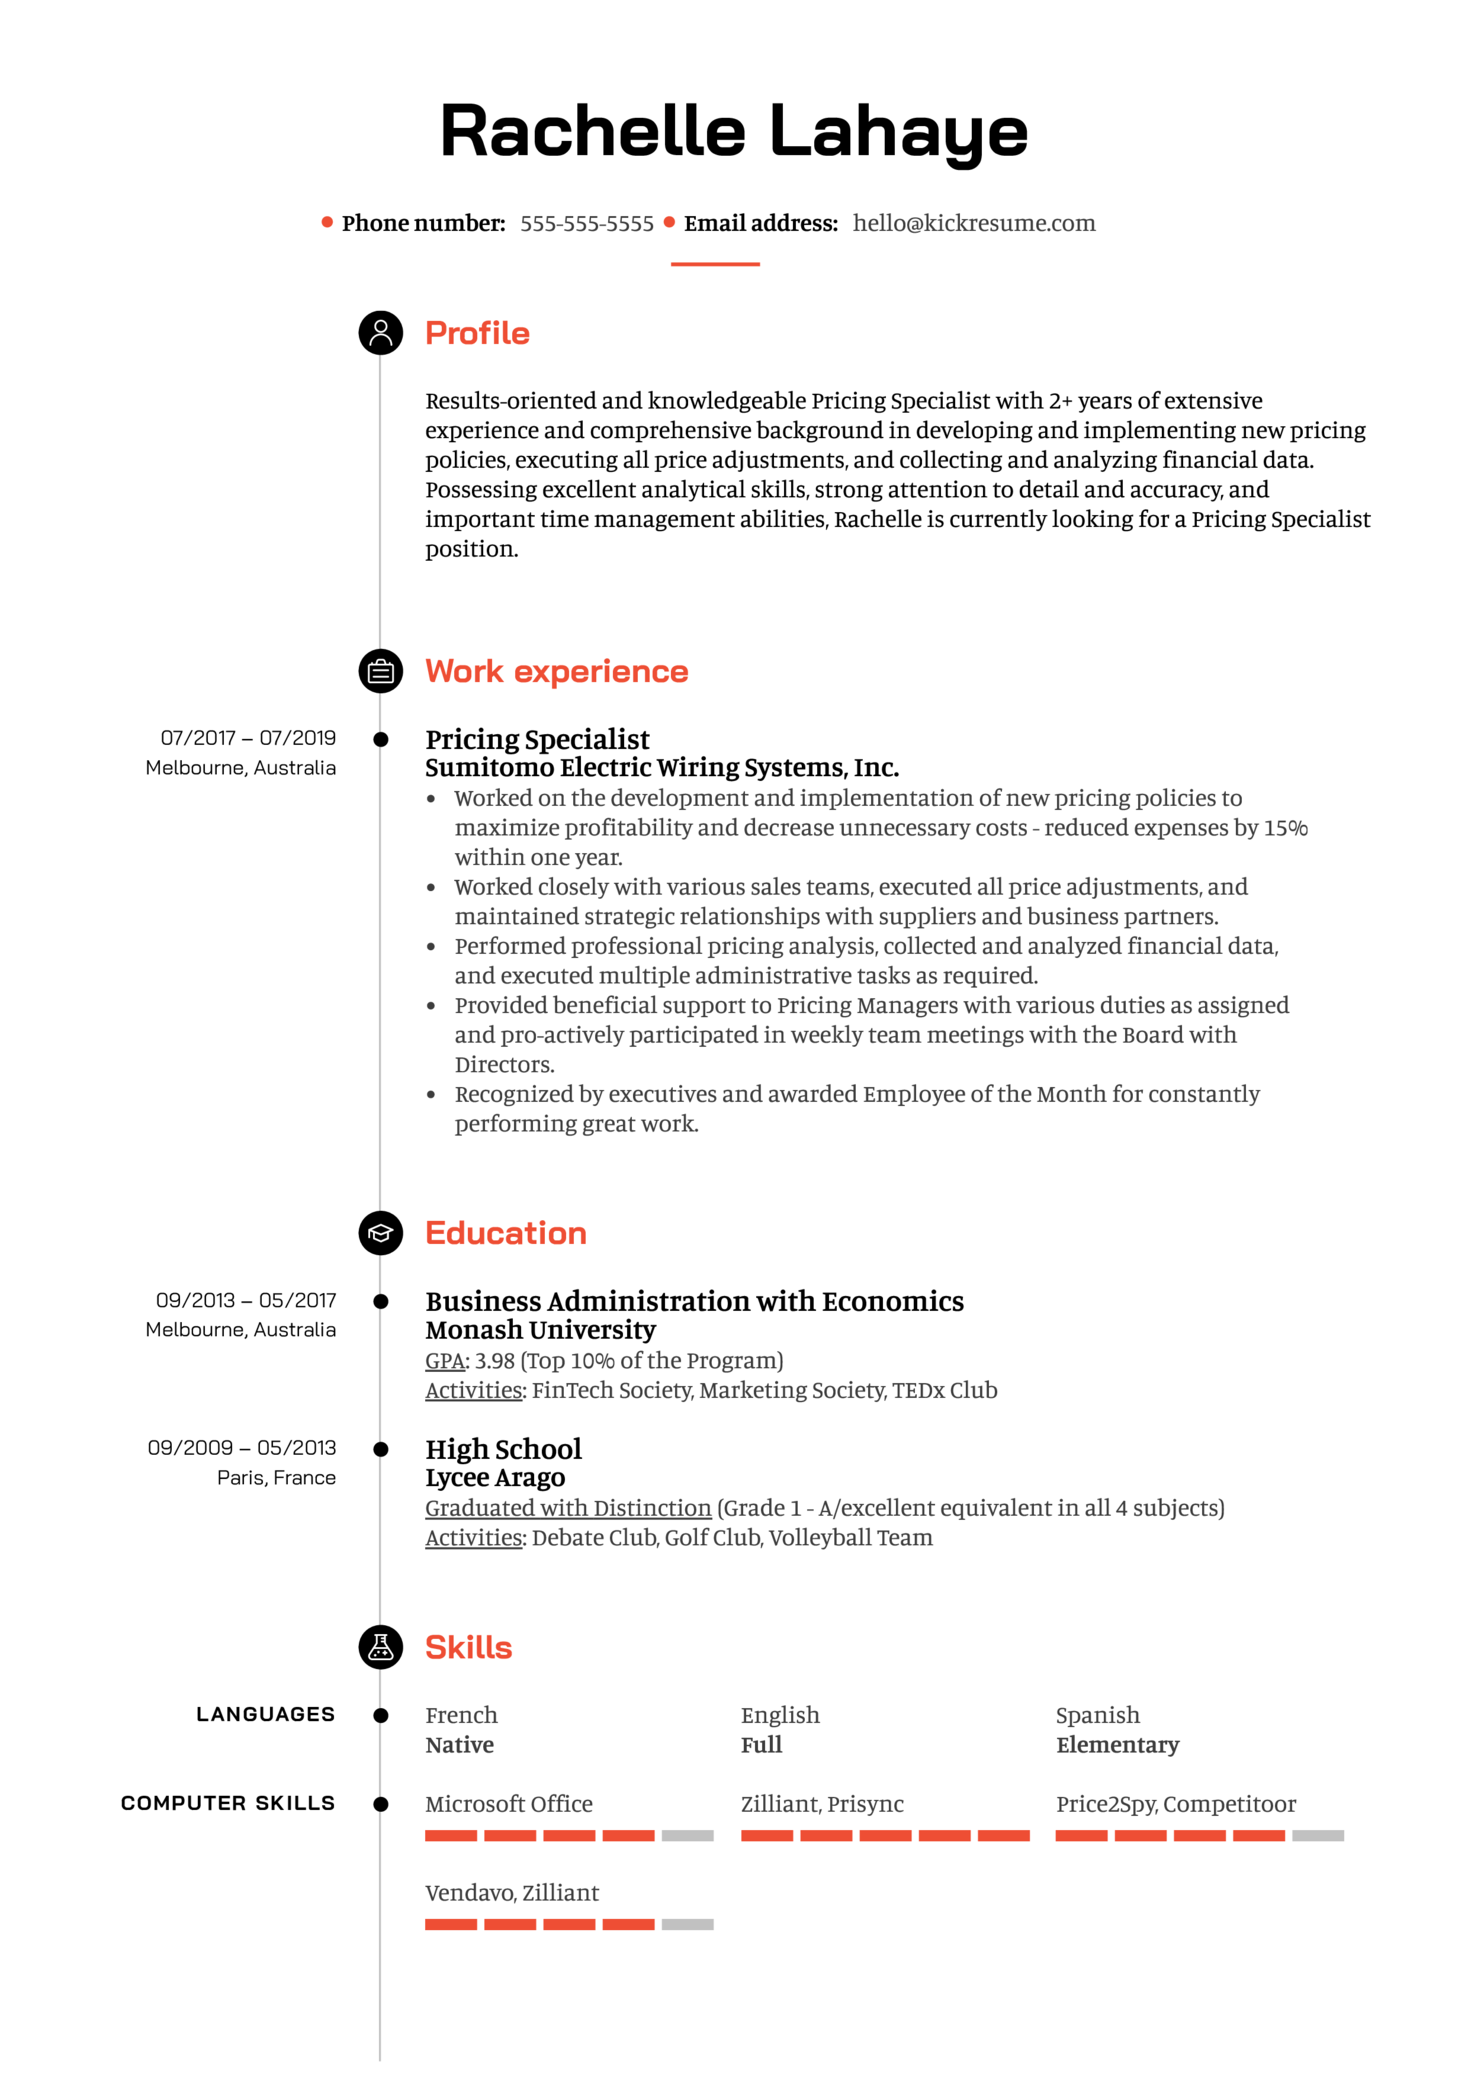 Pricing Specialist Resume Example (časť 1)